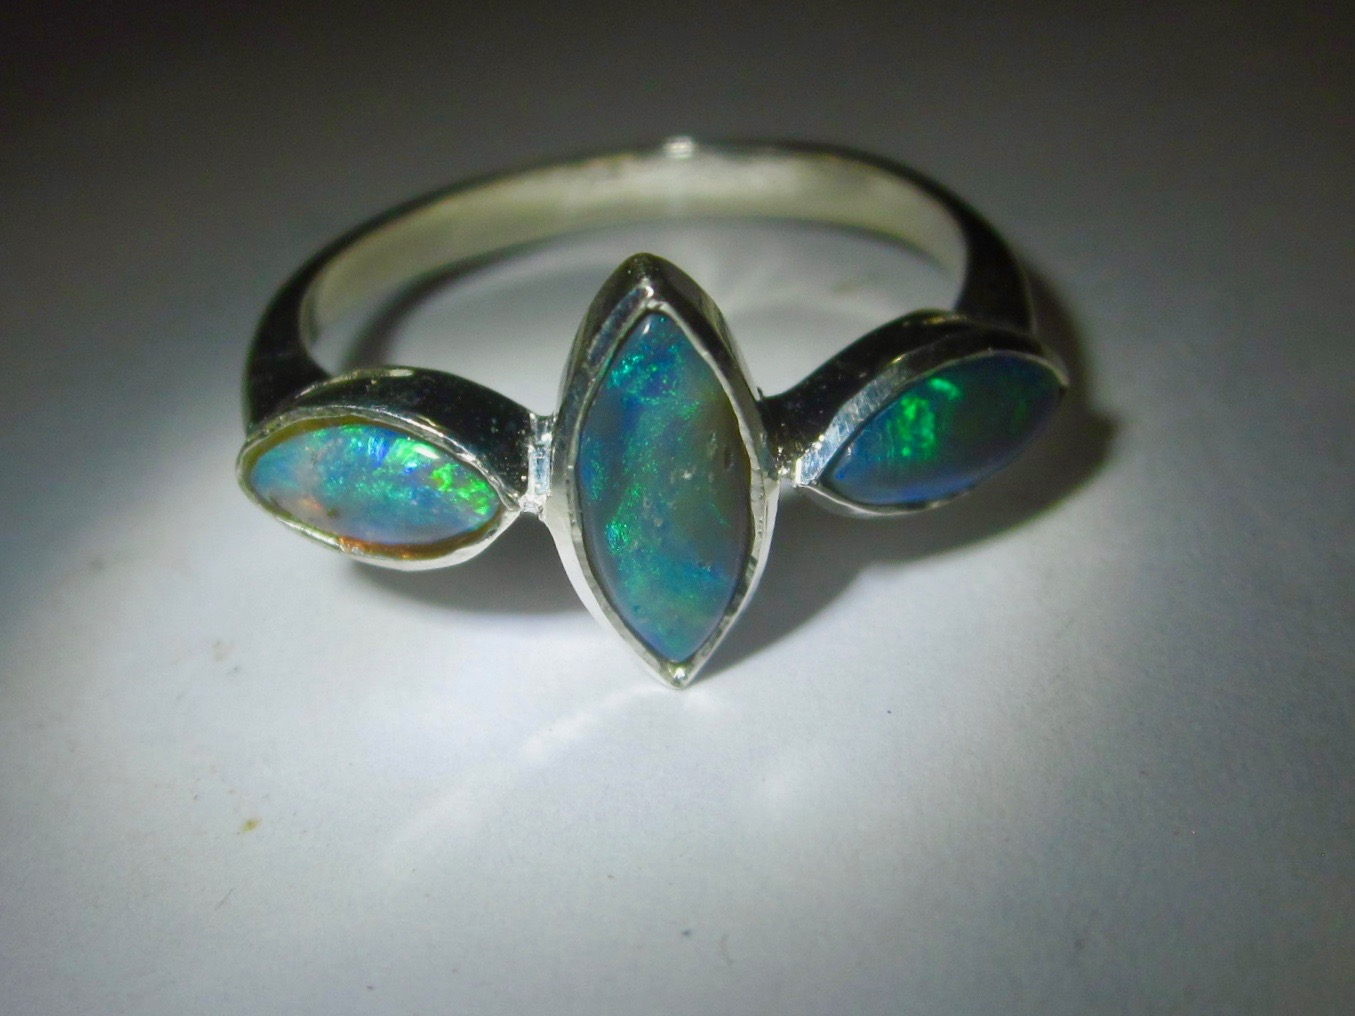 media natural ring oval opal promise rings silver fire wedding birthstone october engagement sterling shape